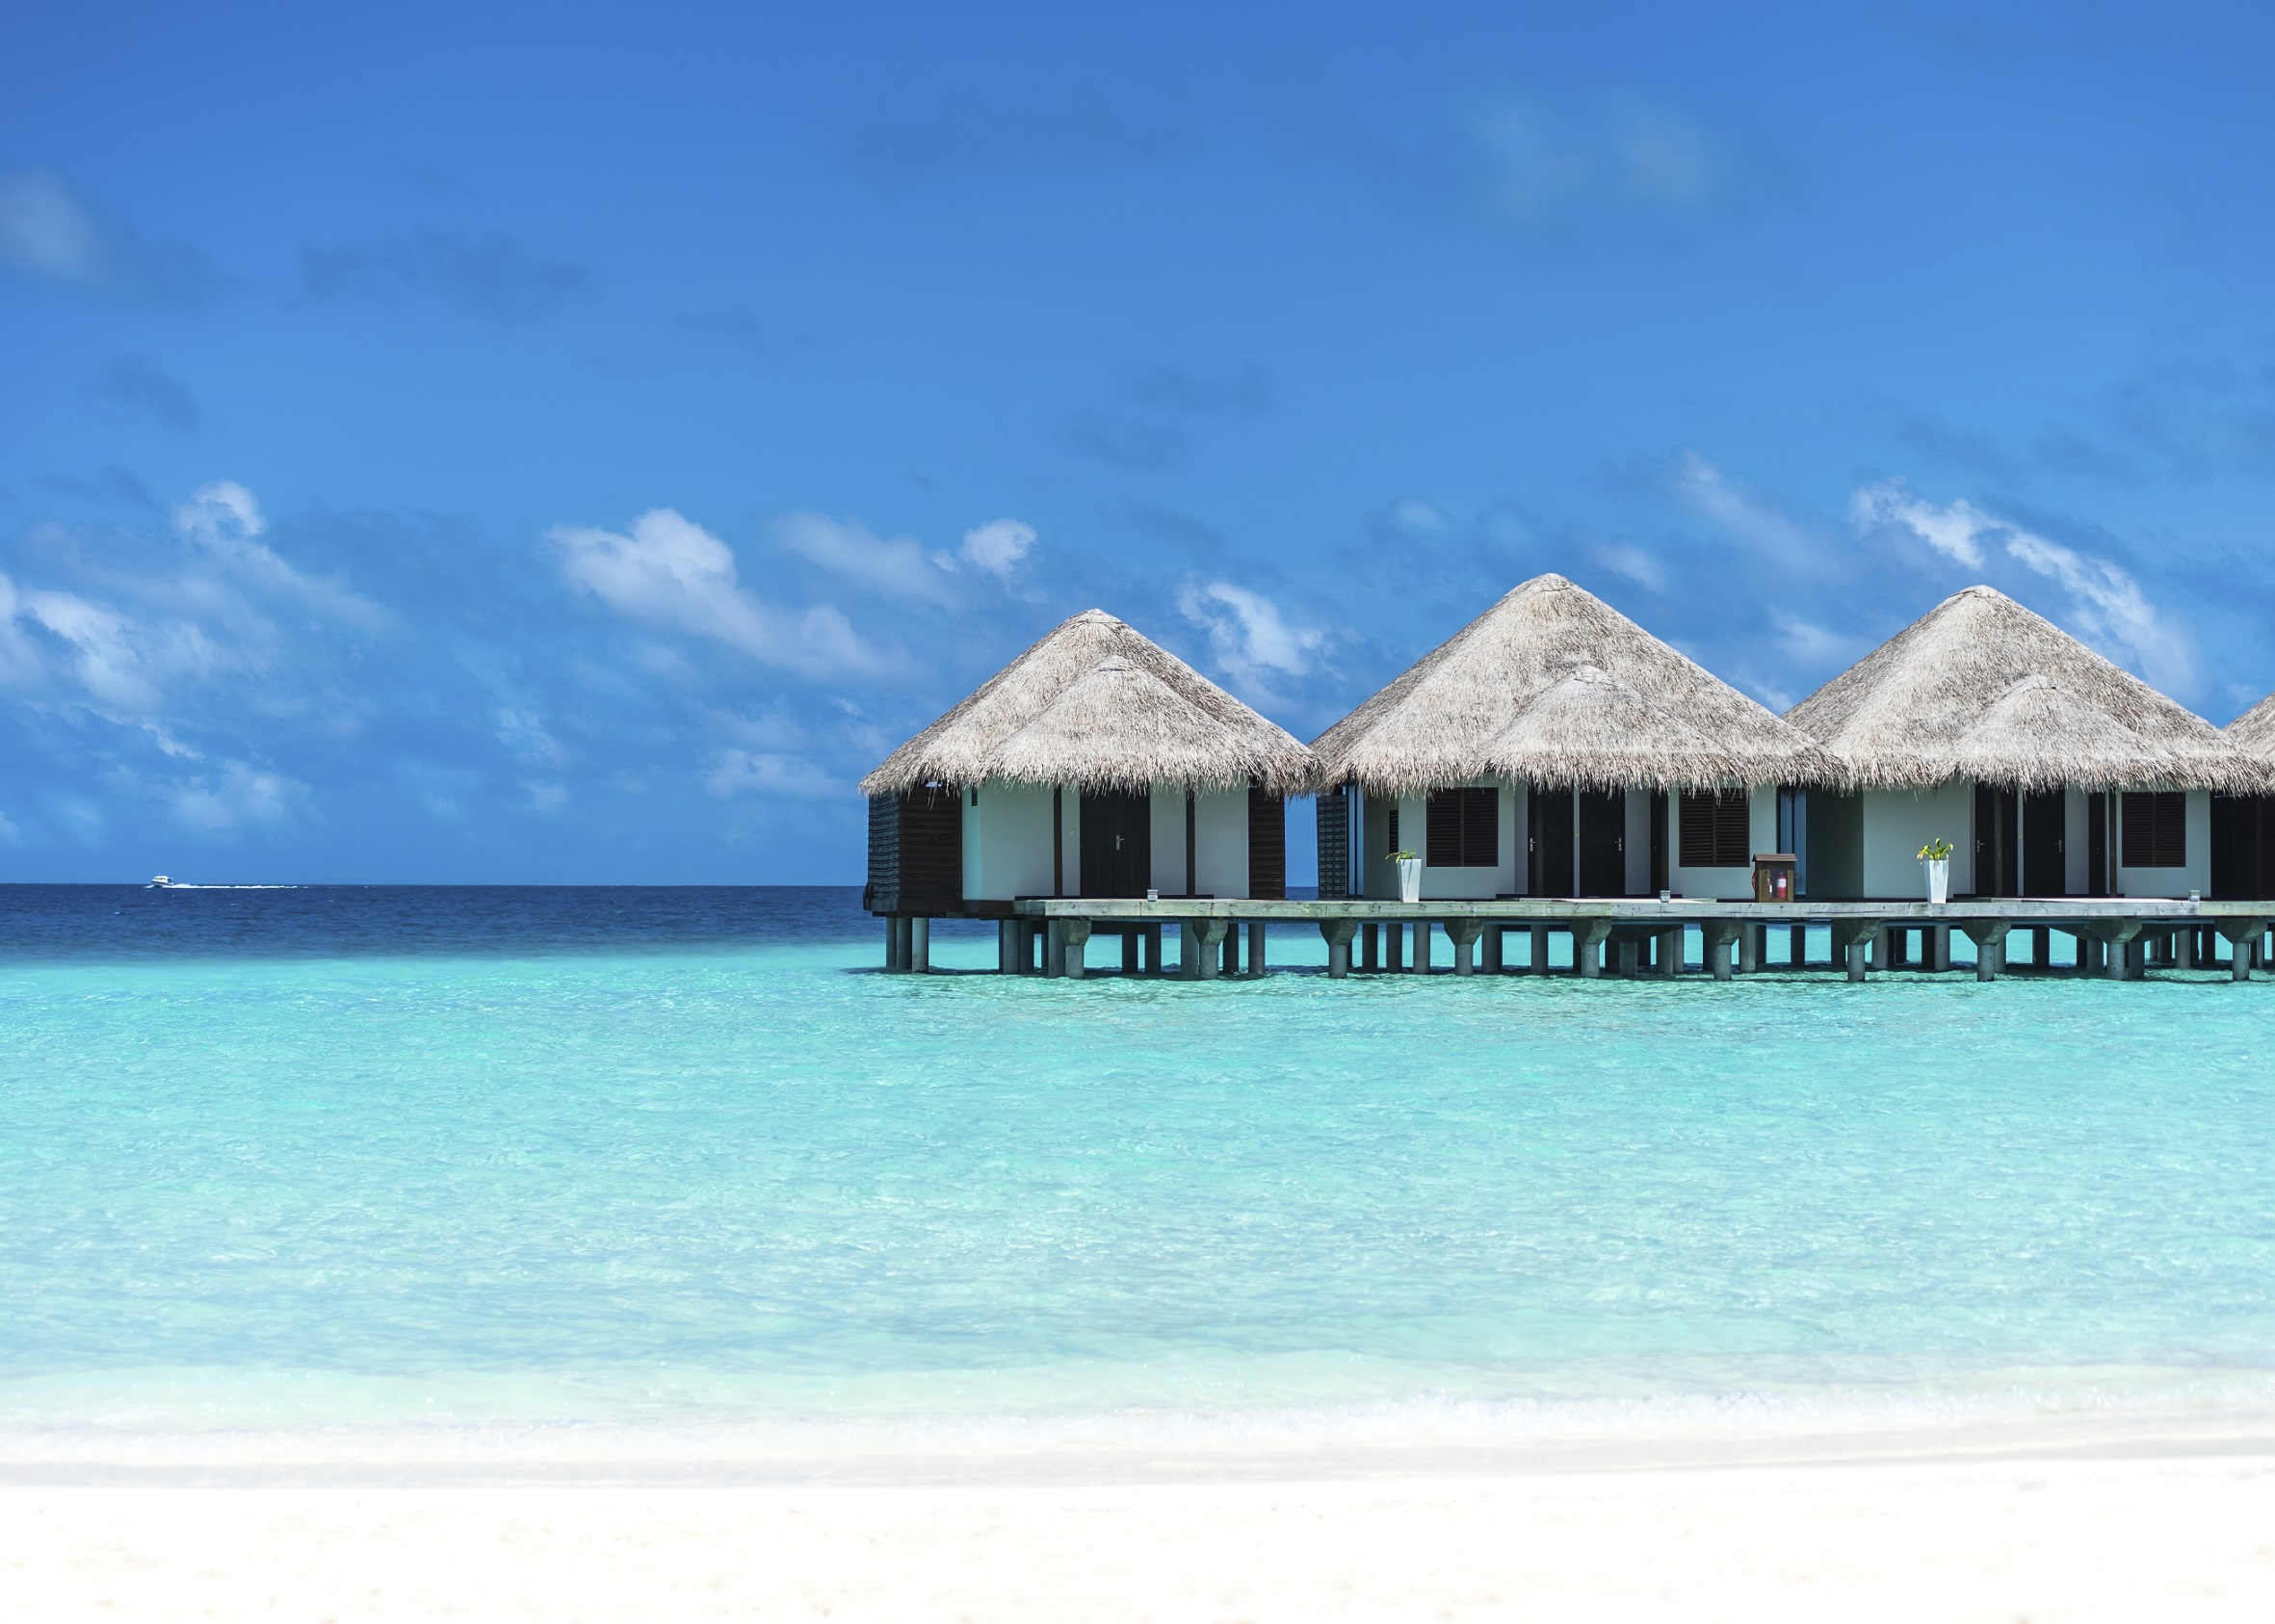 3. The Maldives